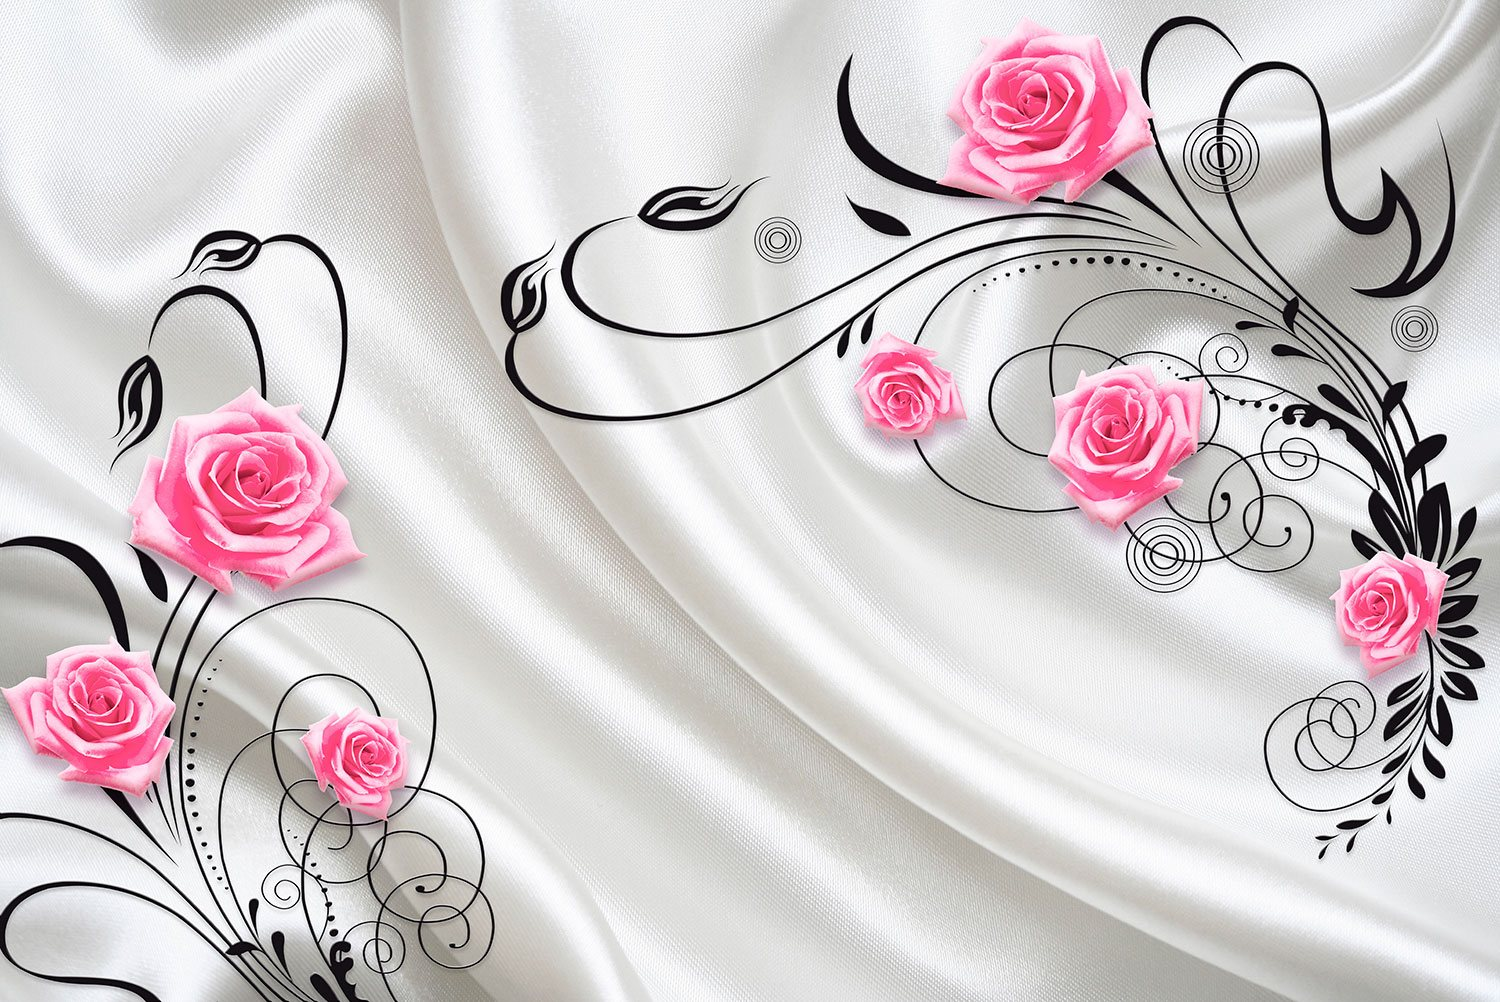 Wall Murals: Roses among ornaments